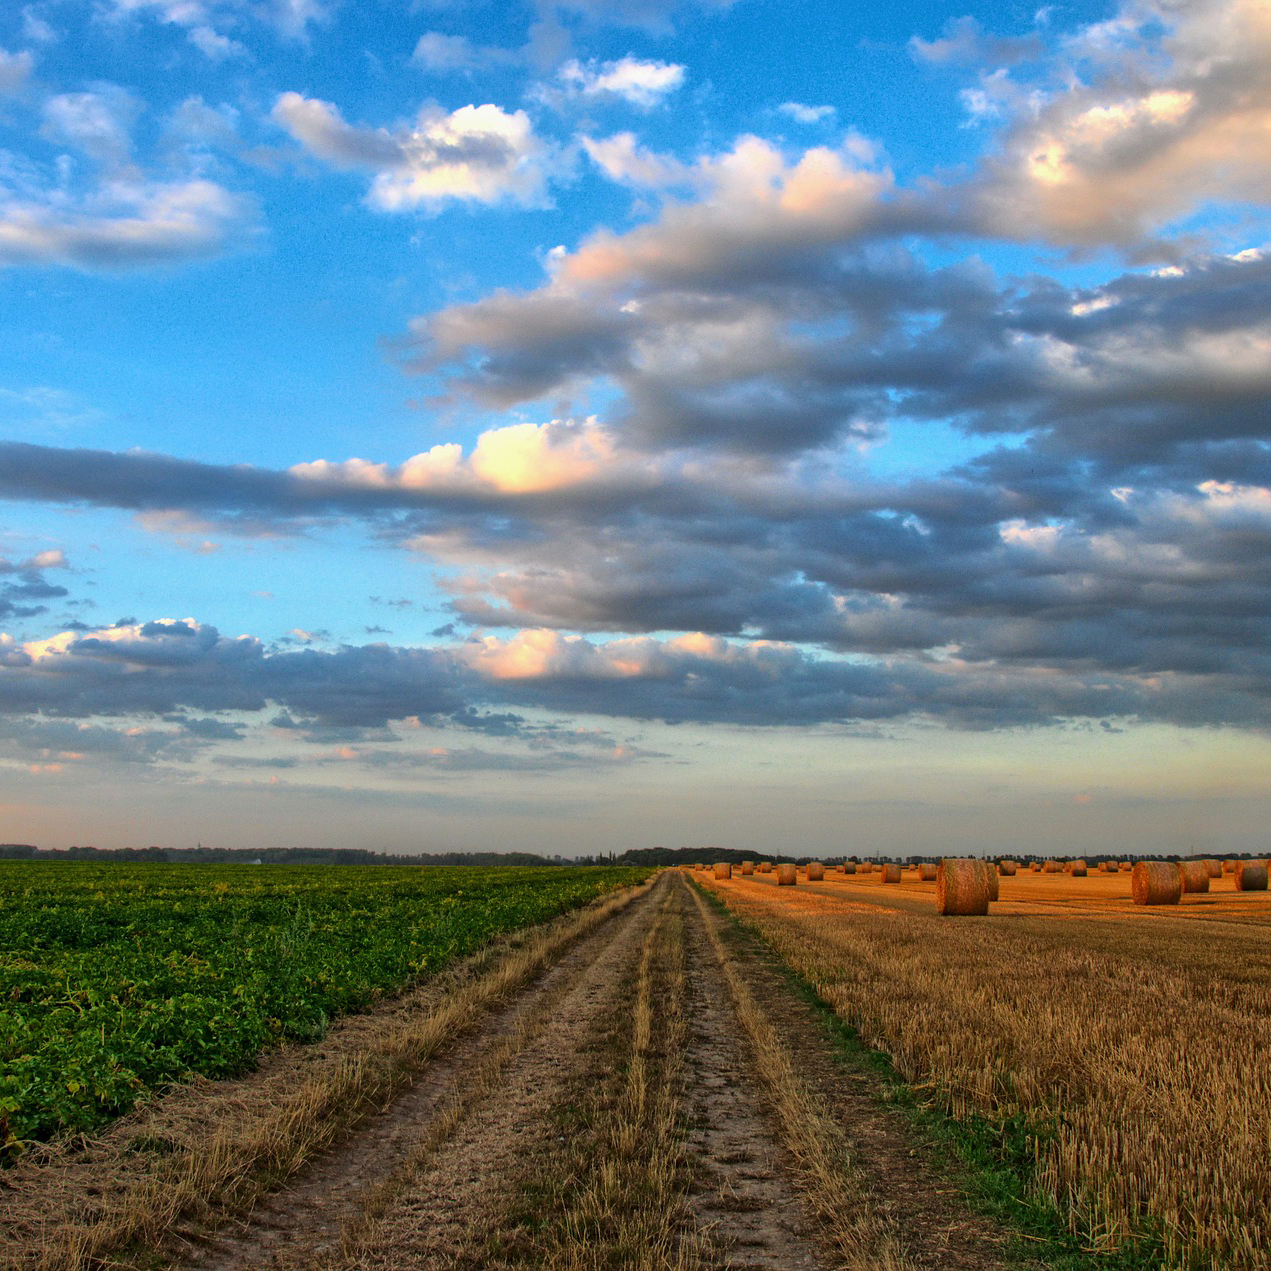 Challenges with Healthcare in the Rural and Prairie Environment